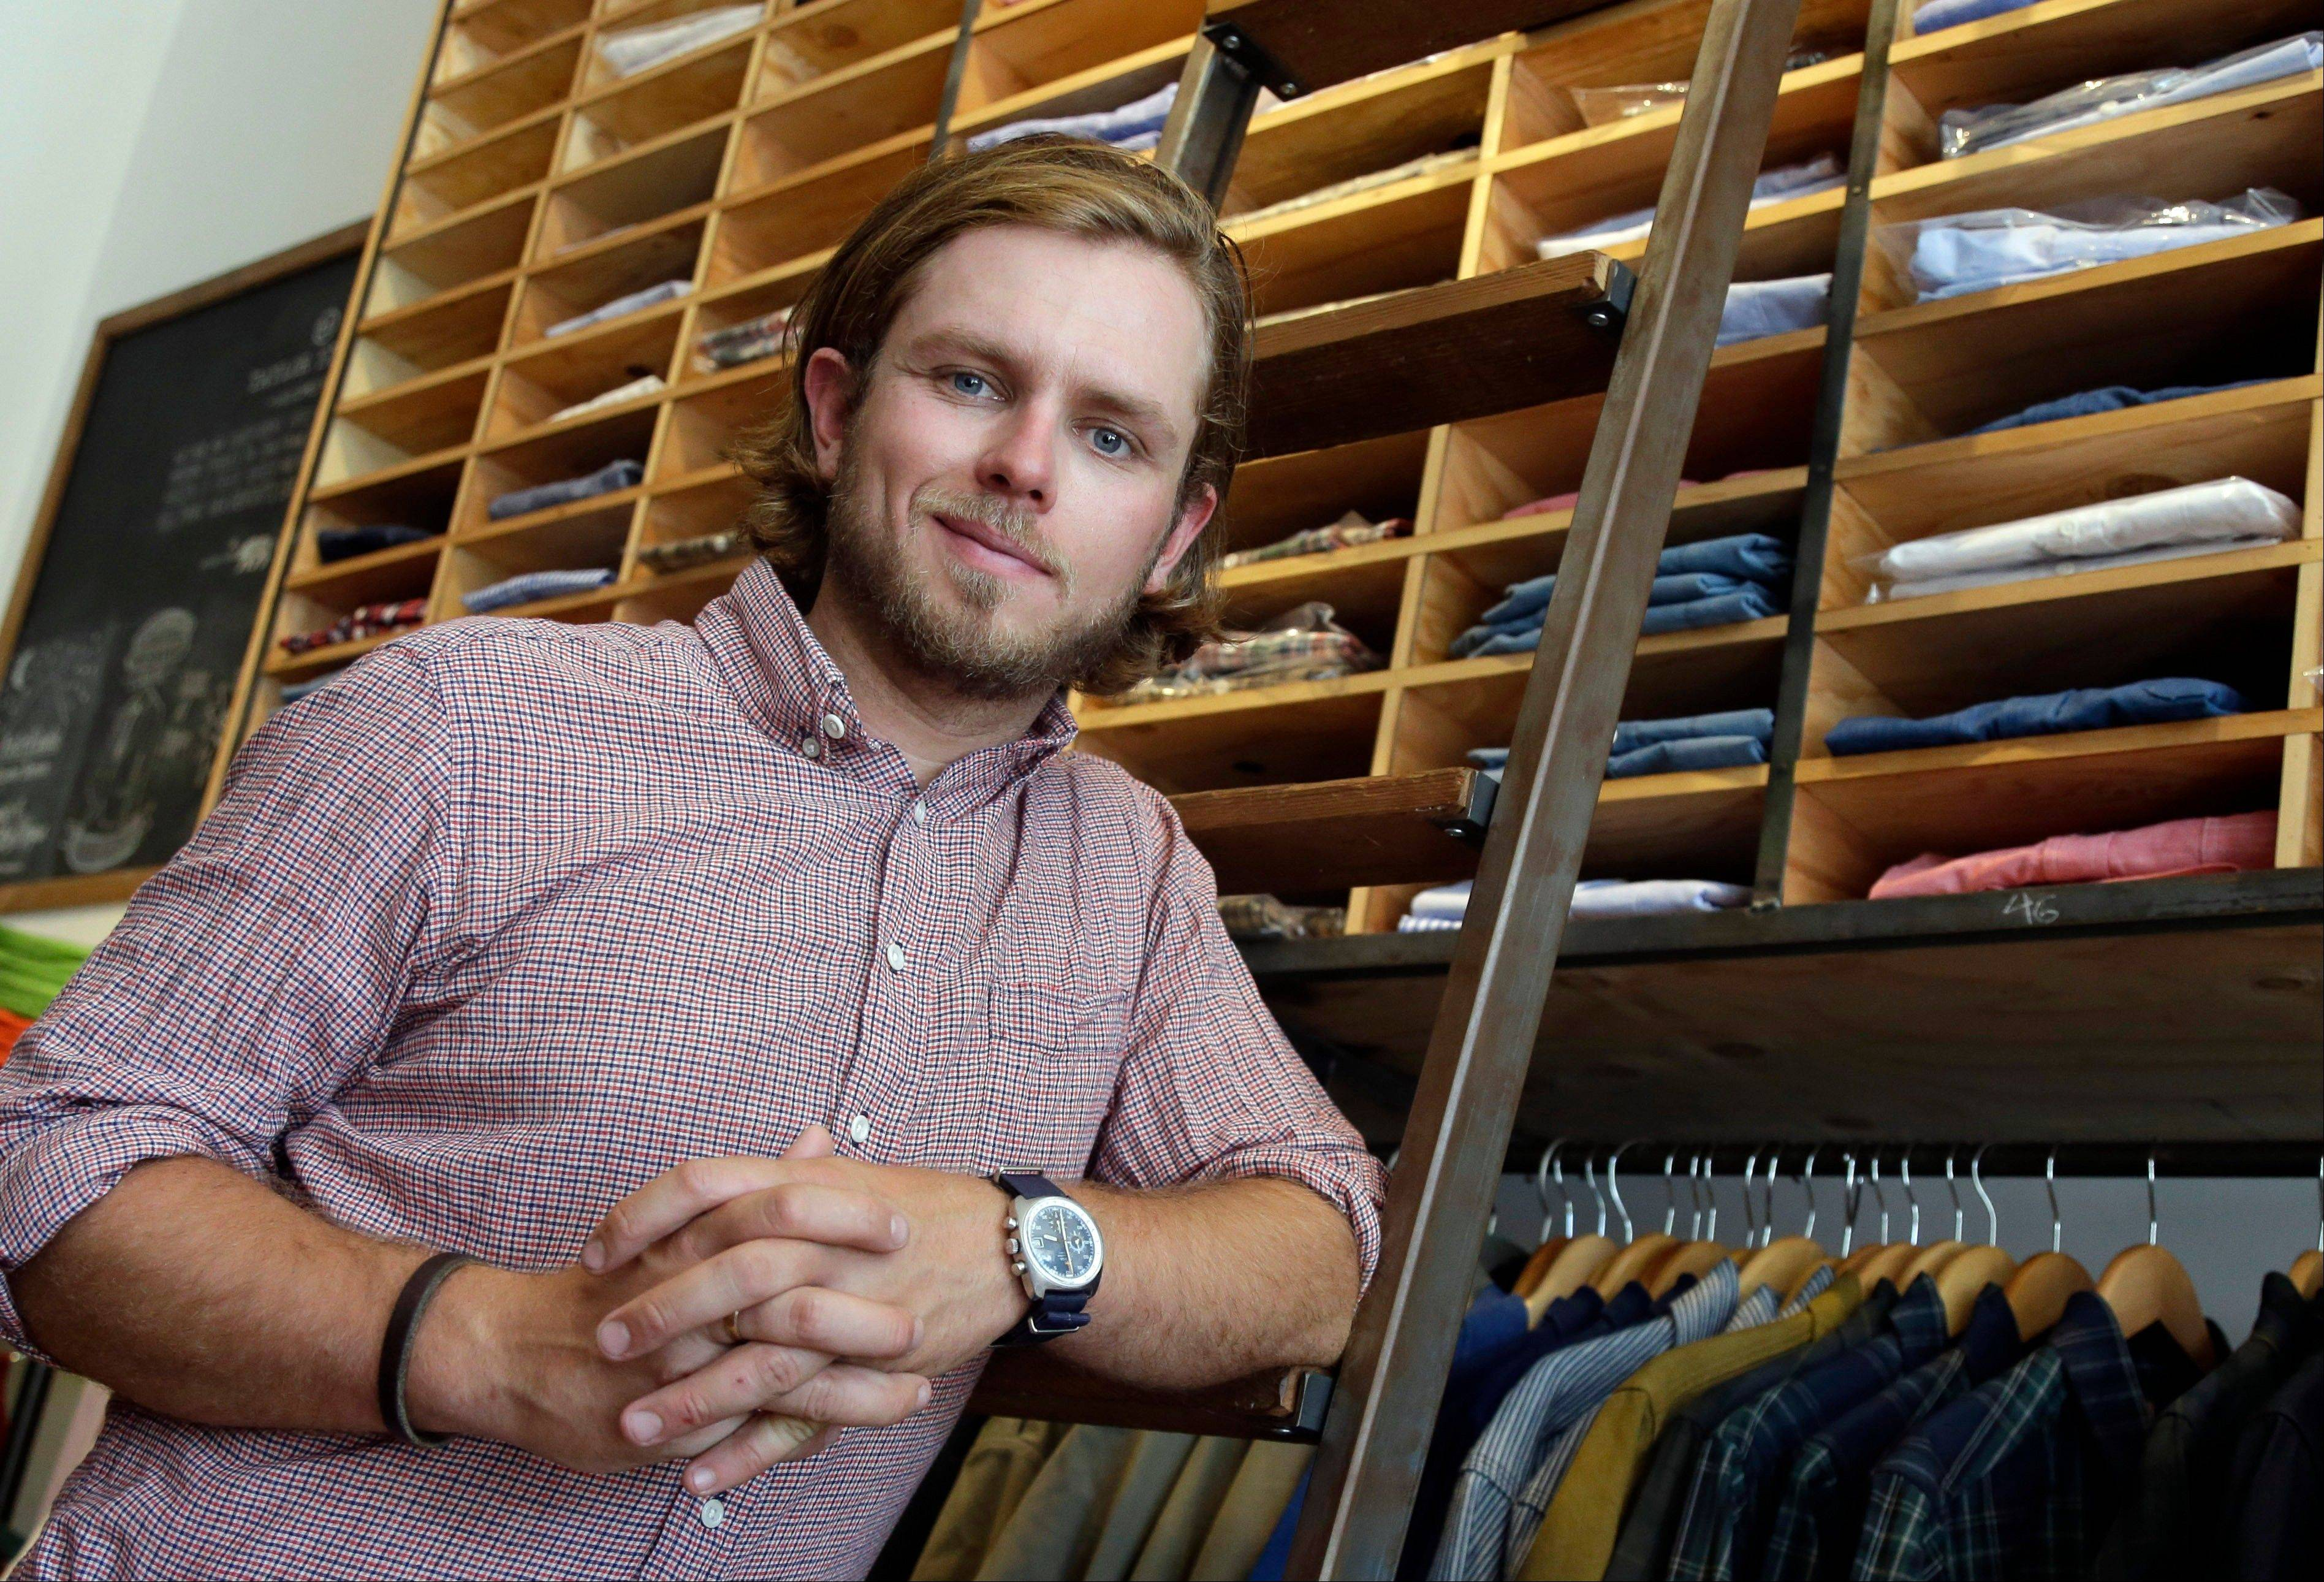 Michael Maher, co-owner of Taylor Stitch in San Francisco, says saving for retirement just isn't a priority. Maher, 28, and his partners used their own savings to start and build the company, and they're relying on their cash flow to buy inventory and run the business.